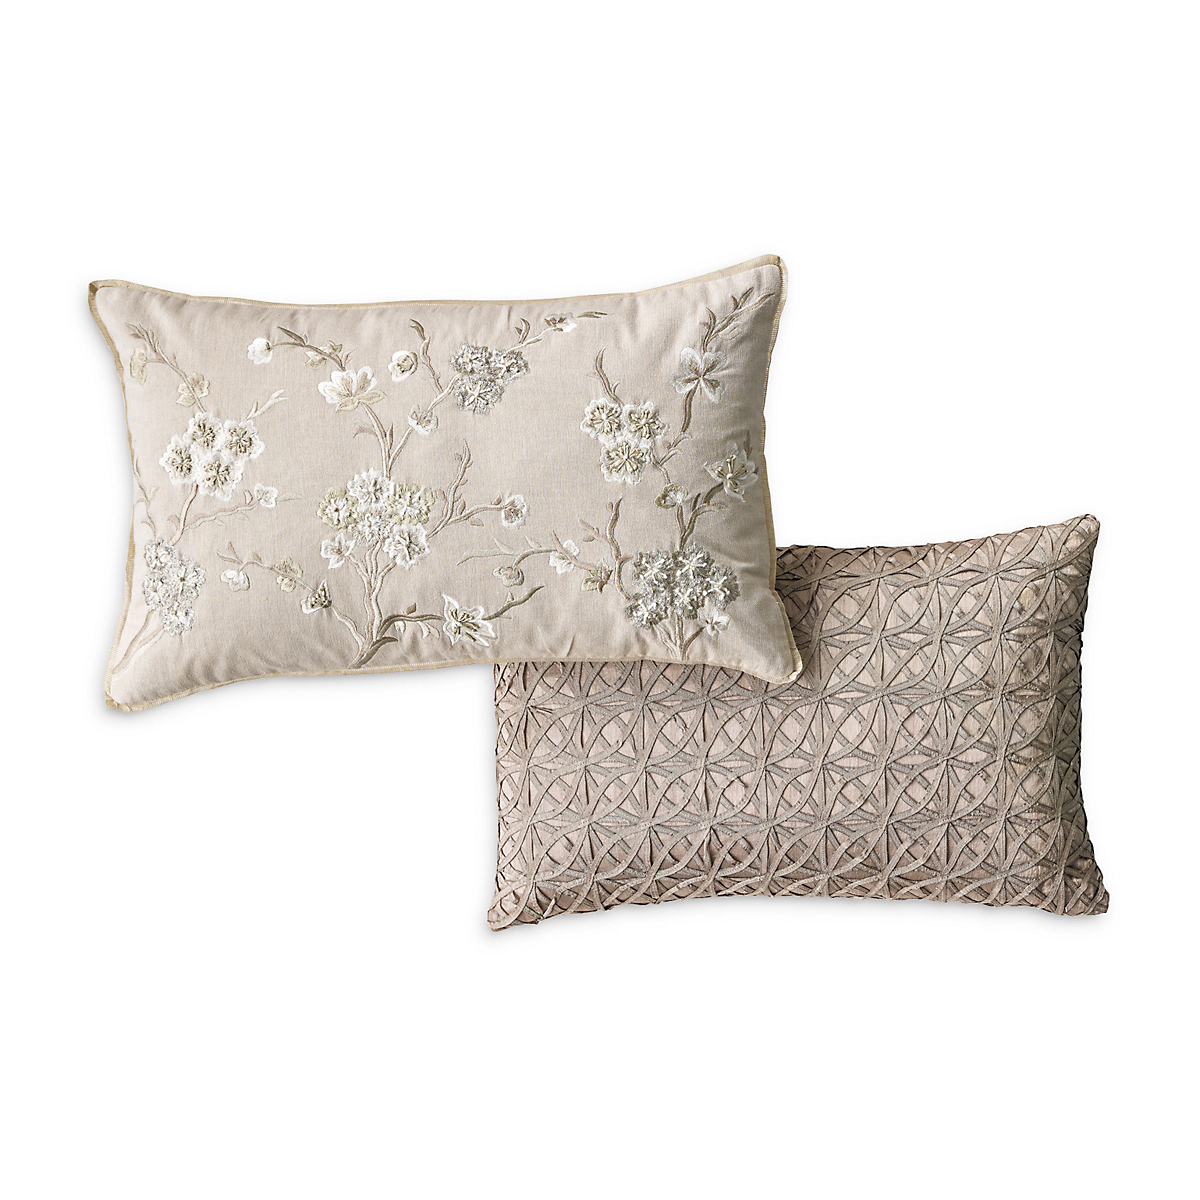 Luxe Textured Pillows